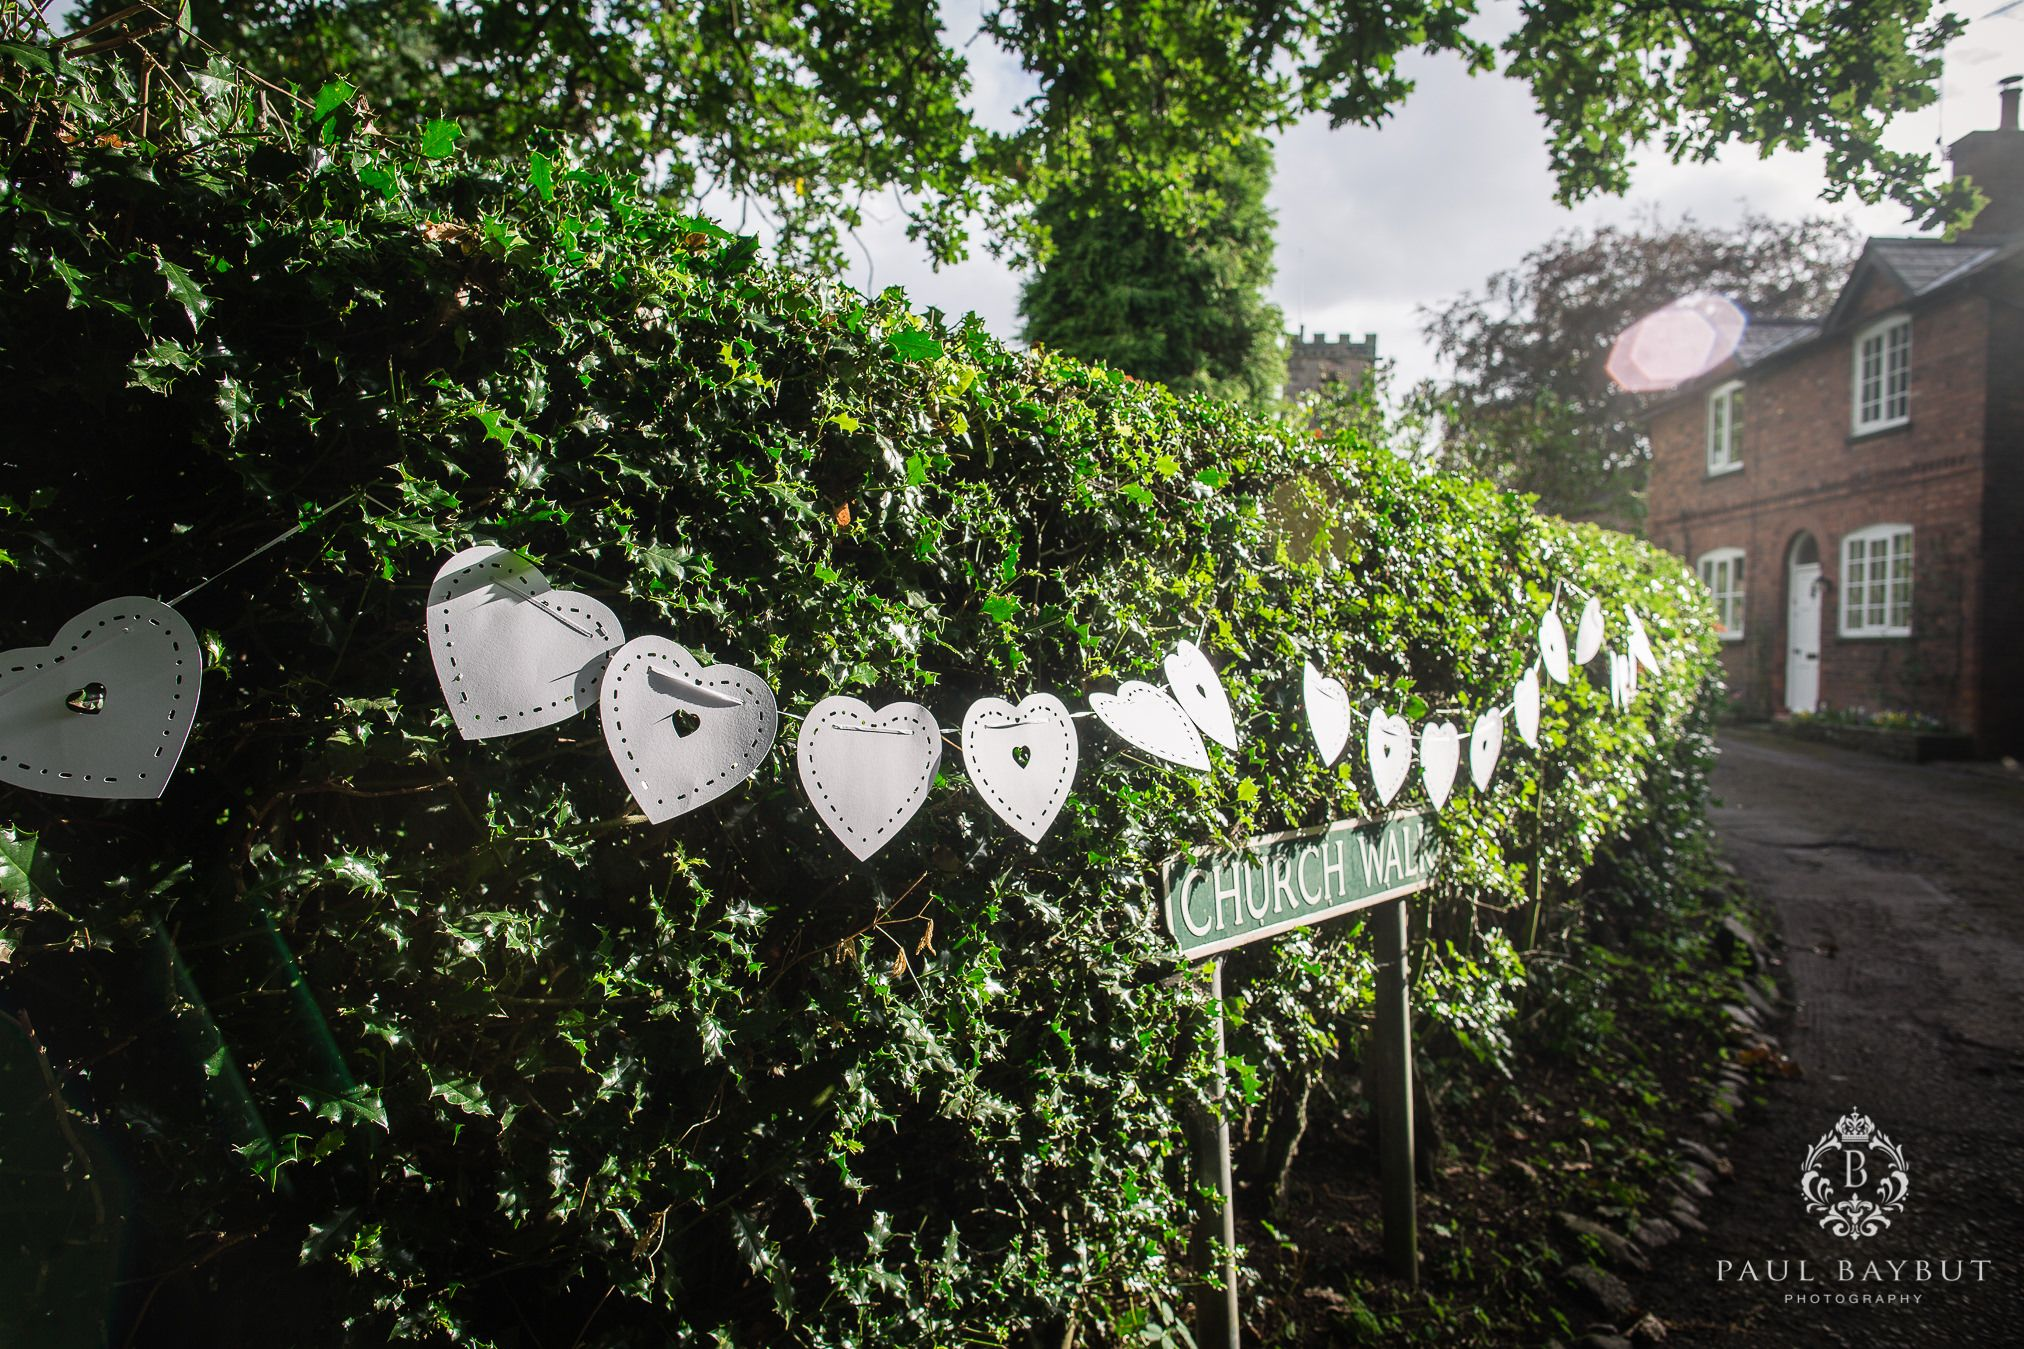 Church Walk in Cheshire with wedding decorations strewn across a garden hedge